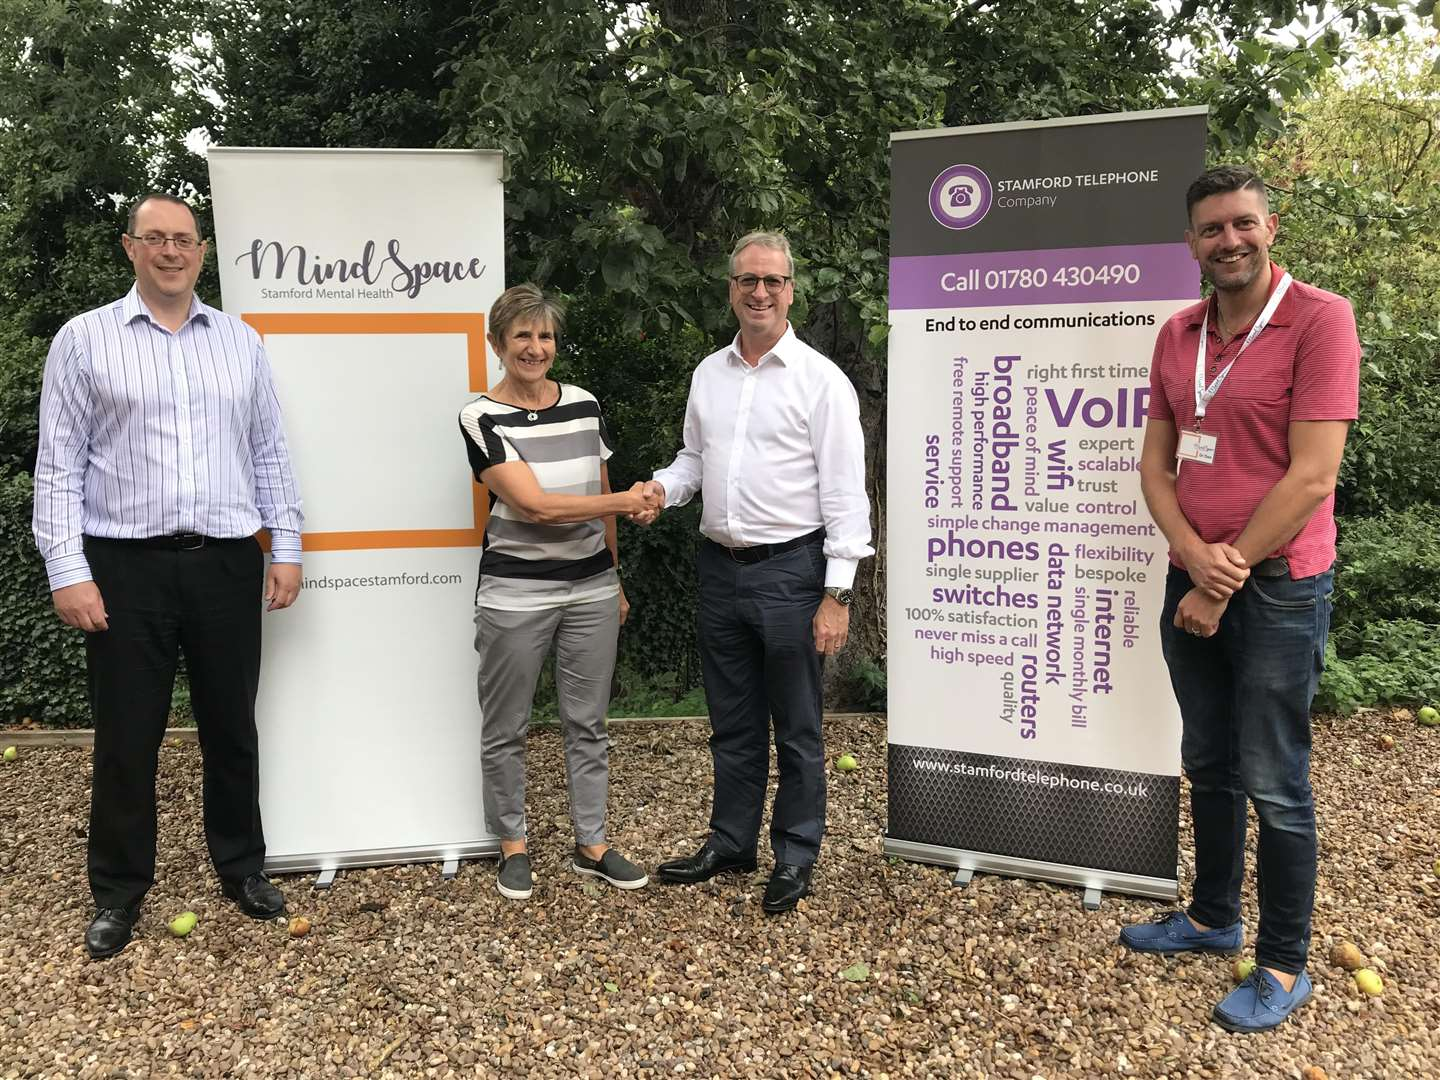 Chris Smith, Helen Howe, Mike Adams and Dan Petrie celebrate a collaboration between MindSpace Stamford and Stamford Telephone Company